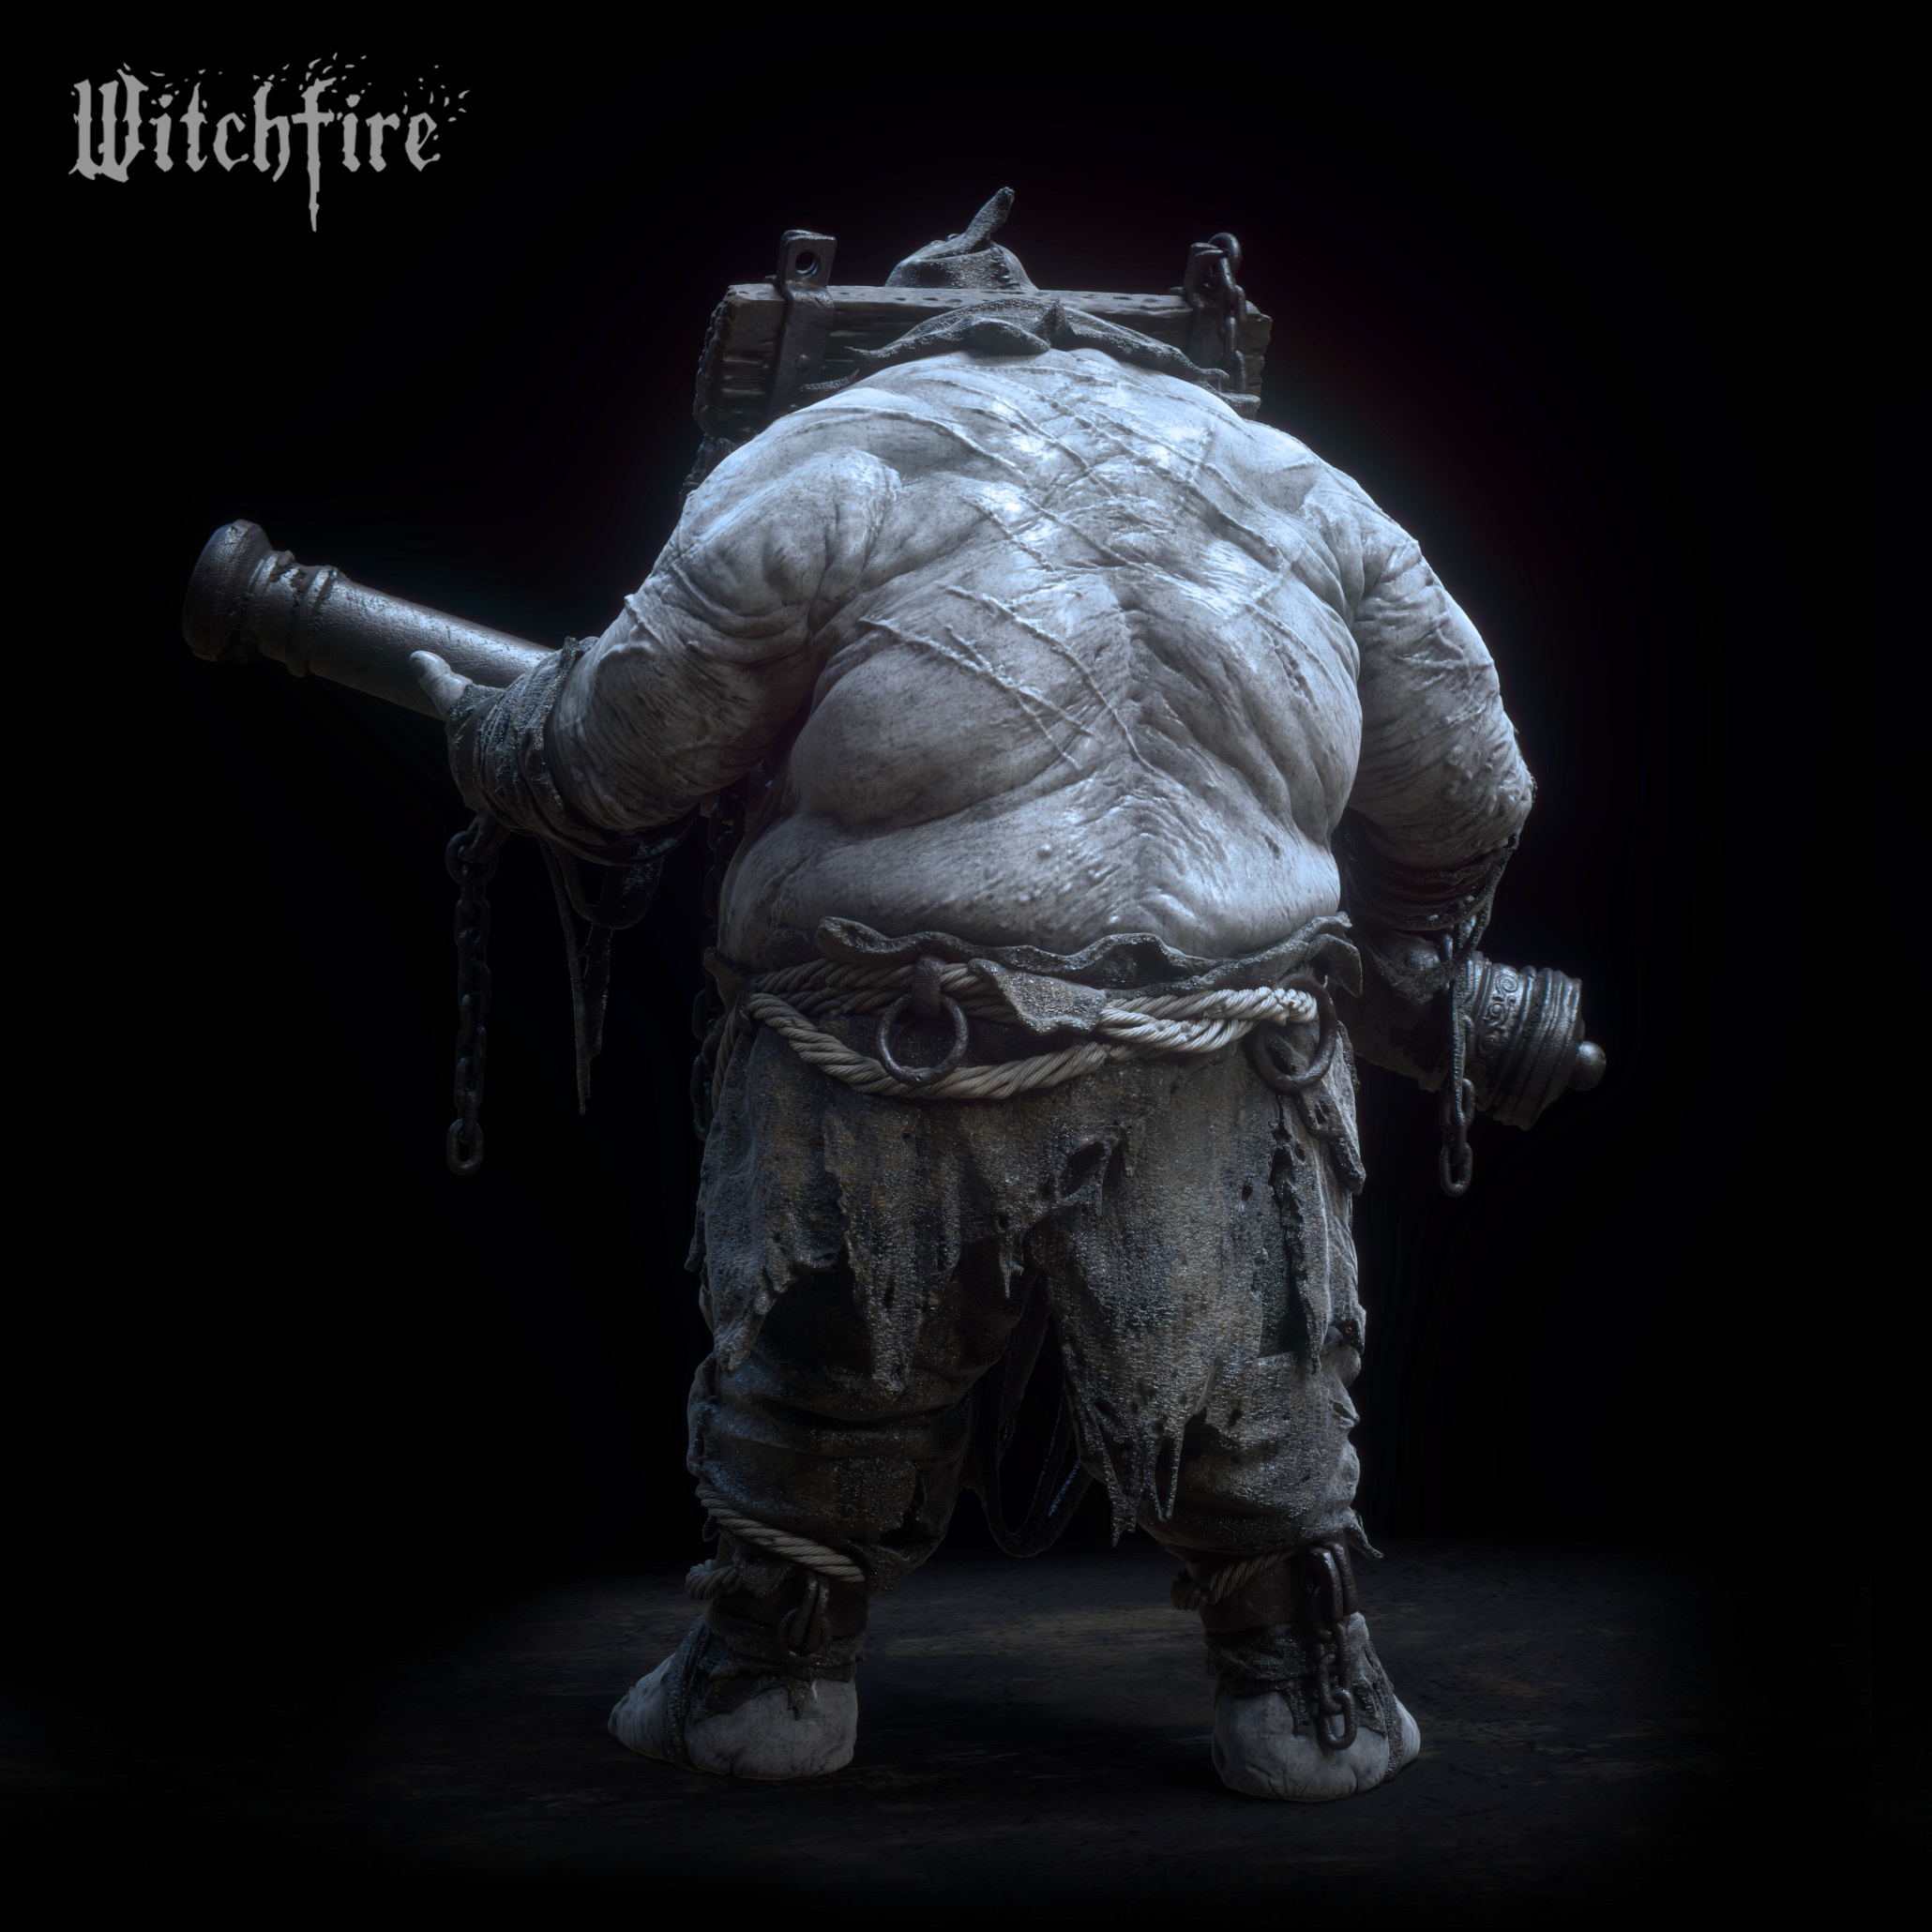 witchfire_ogr_render_06_single_C.jpg